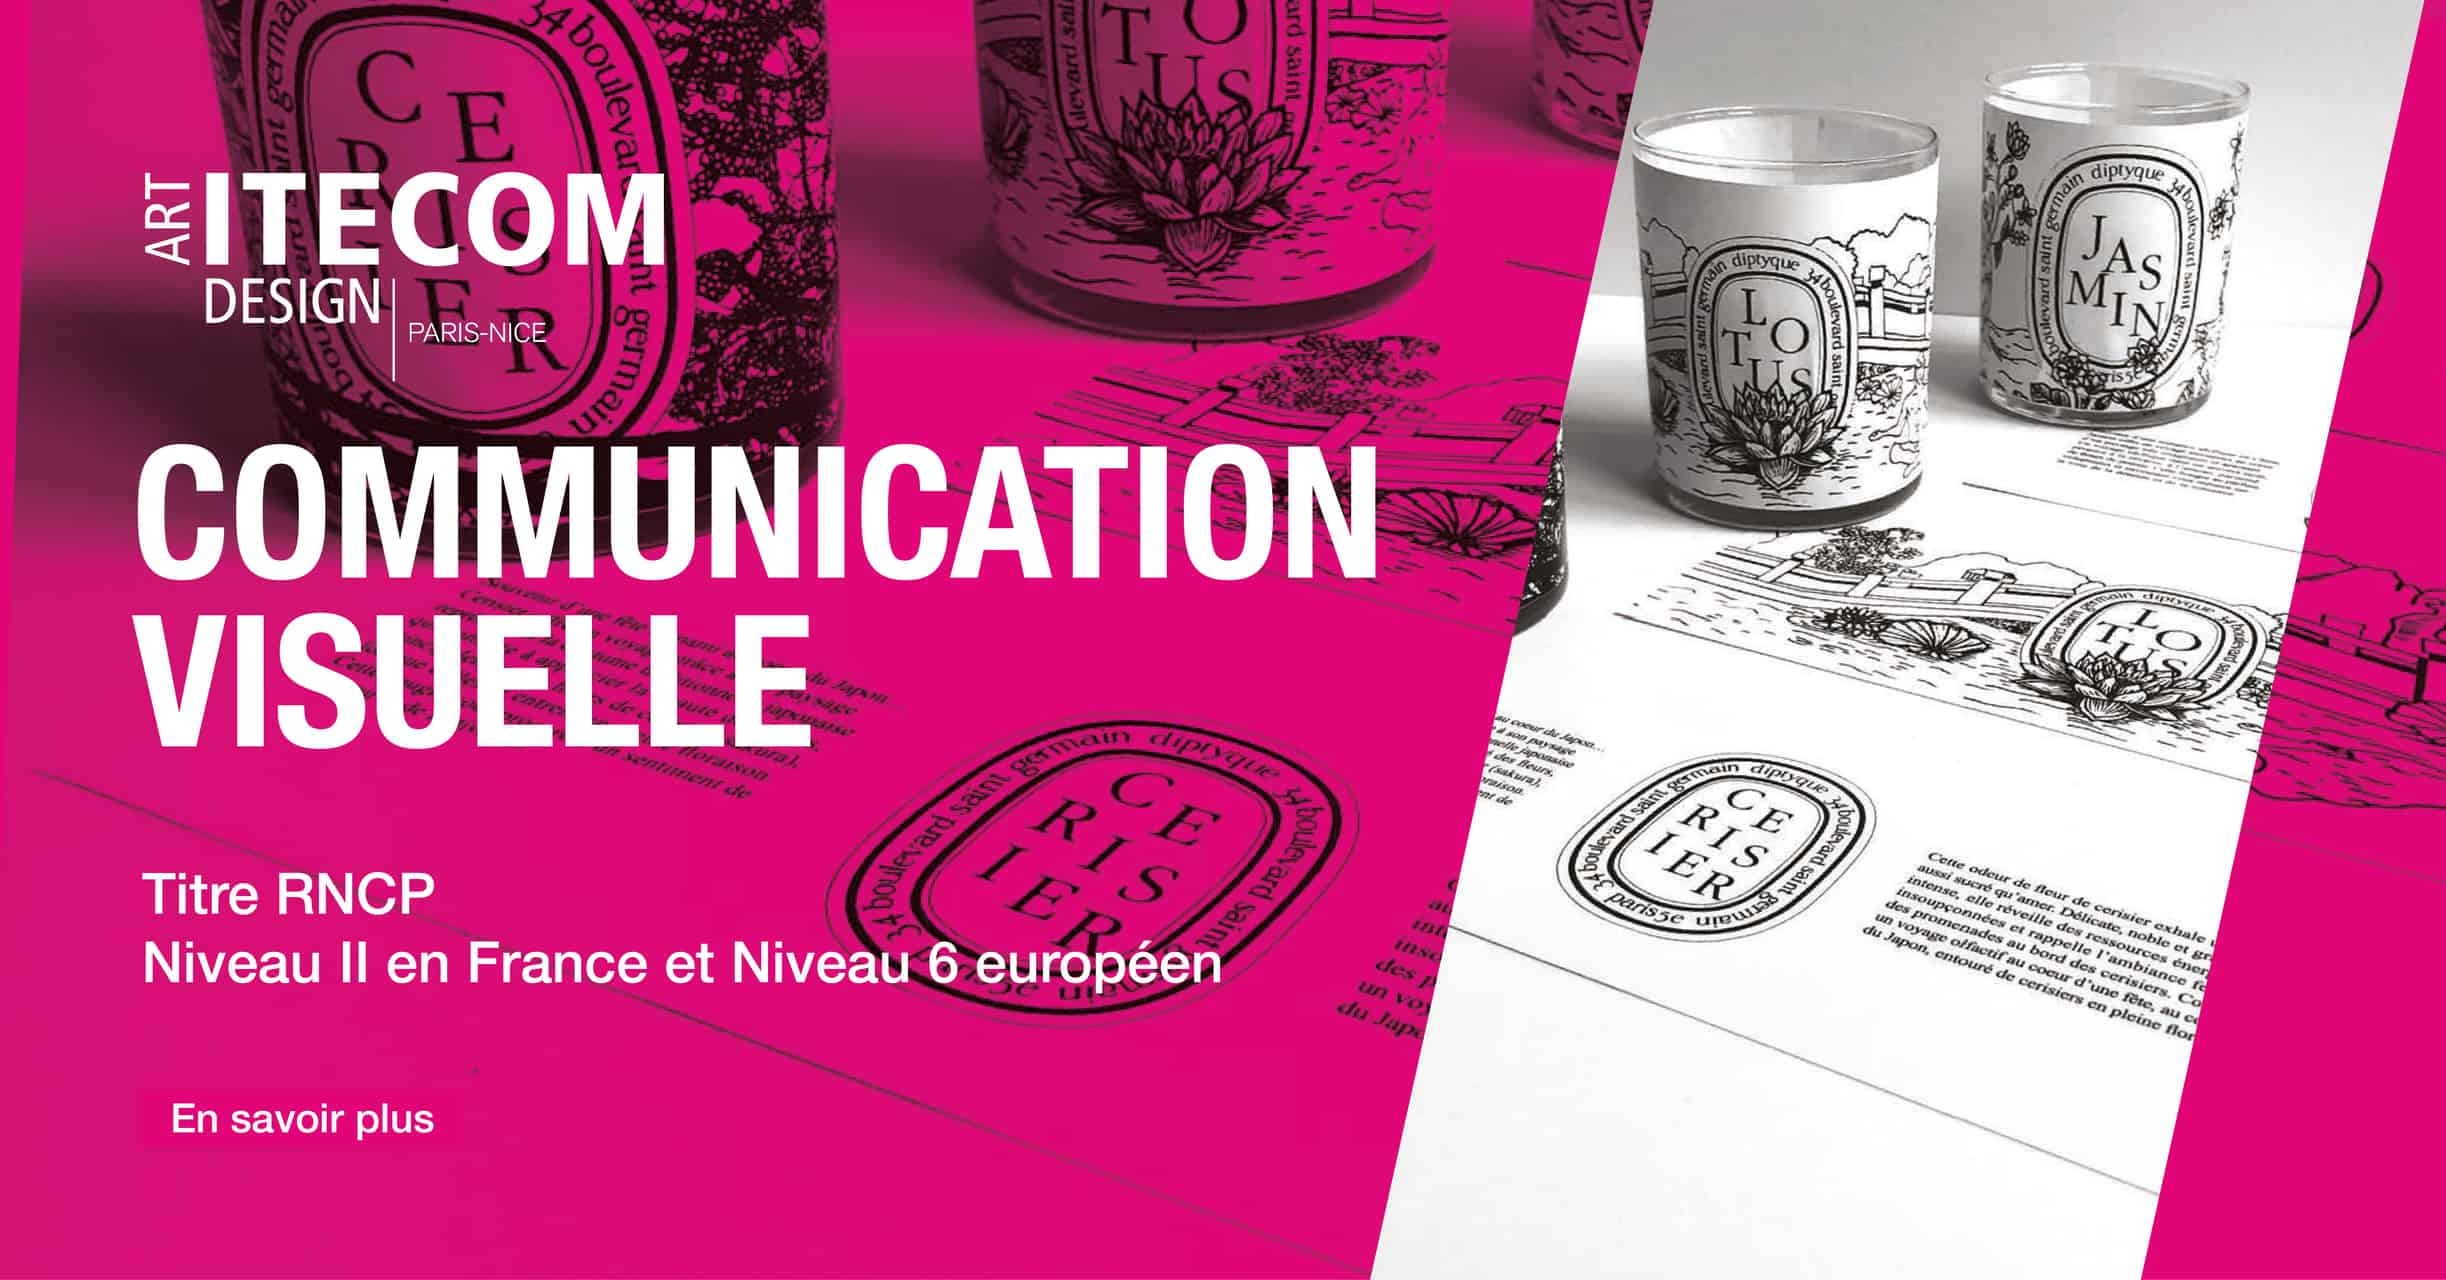 Communication visuelle Itecom nice